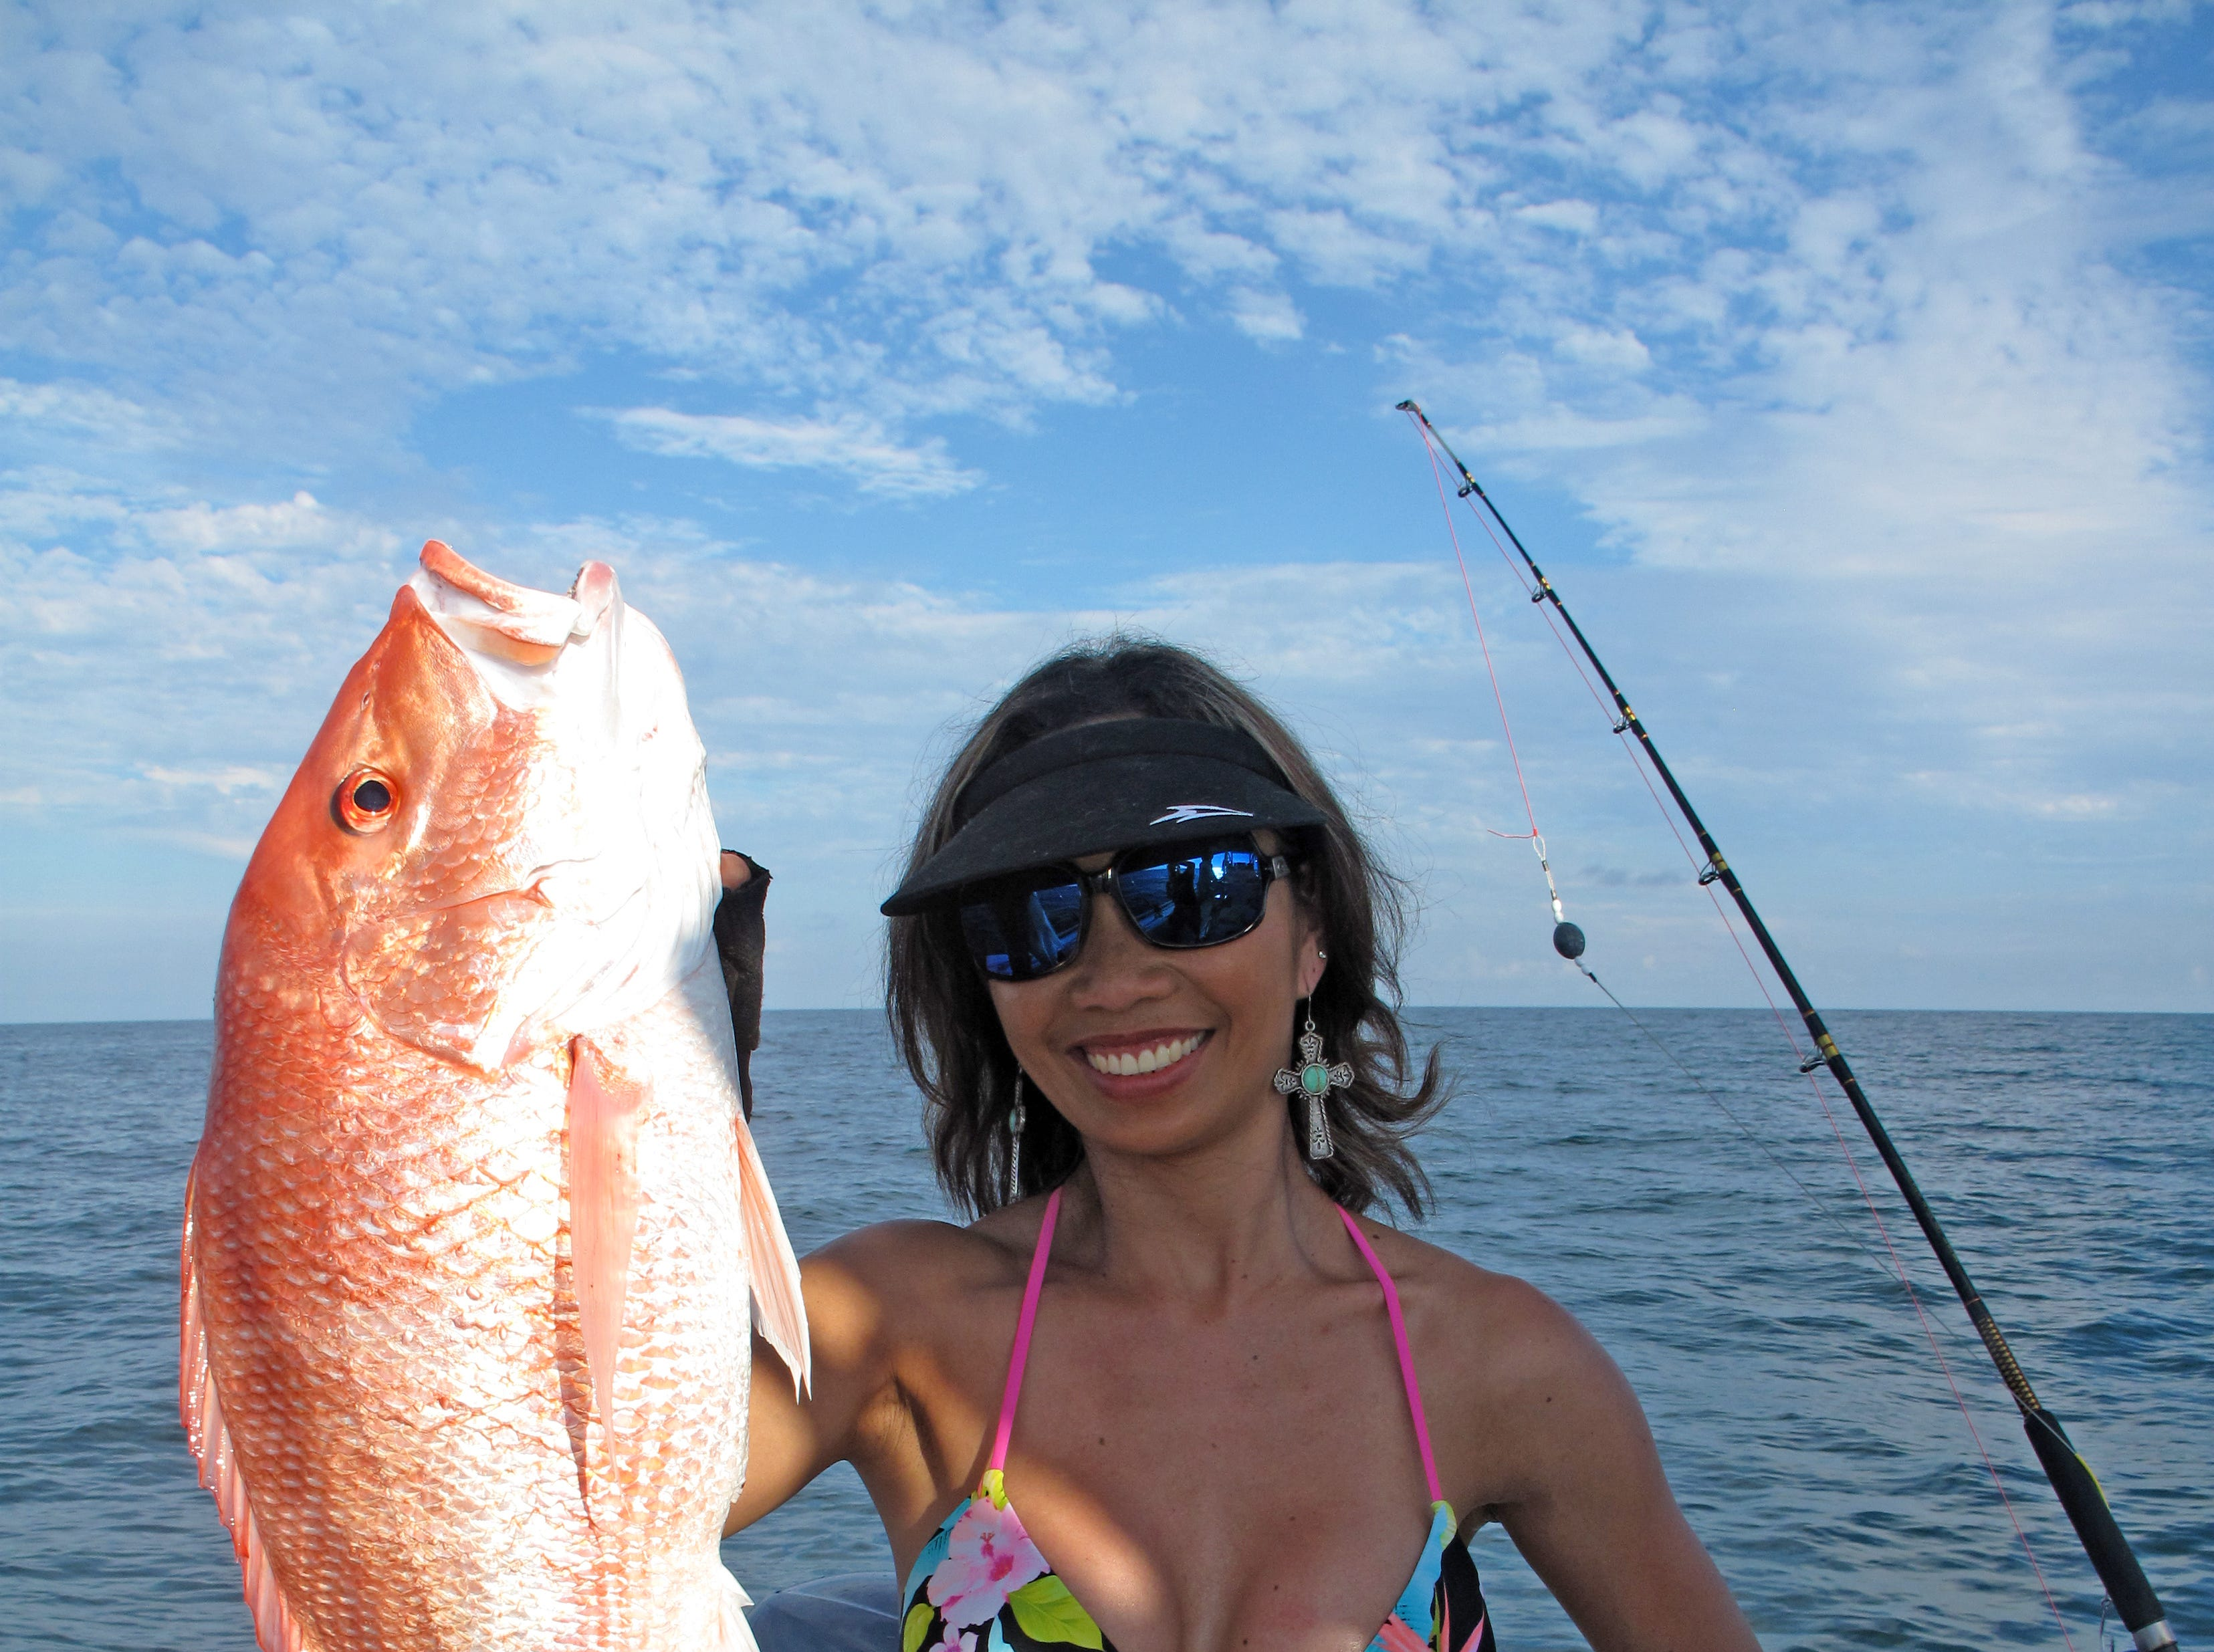 Crissy Layton caught this big red snapper while fishing offshore aboard the Fish & Fun II.